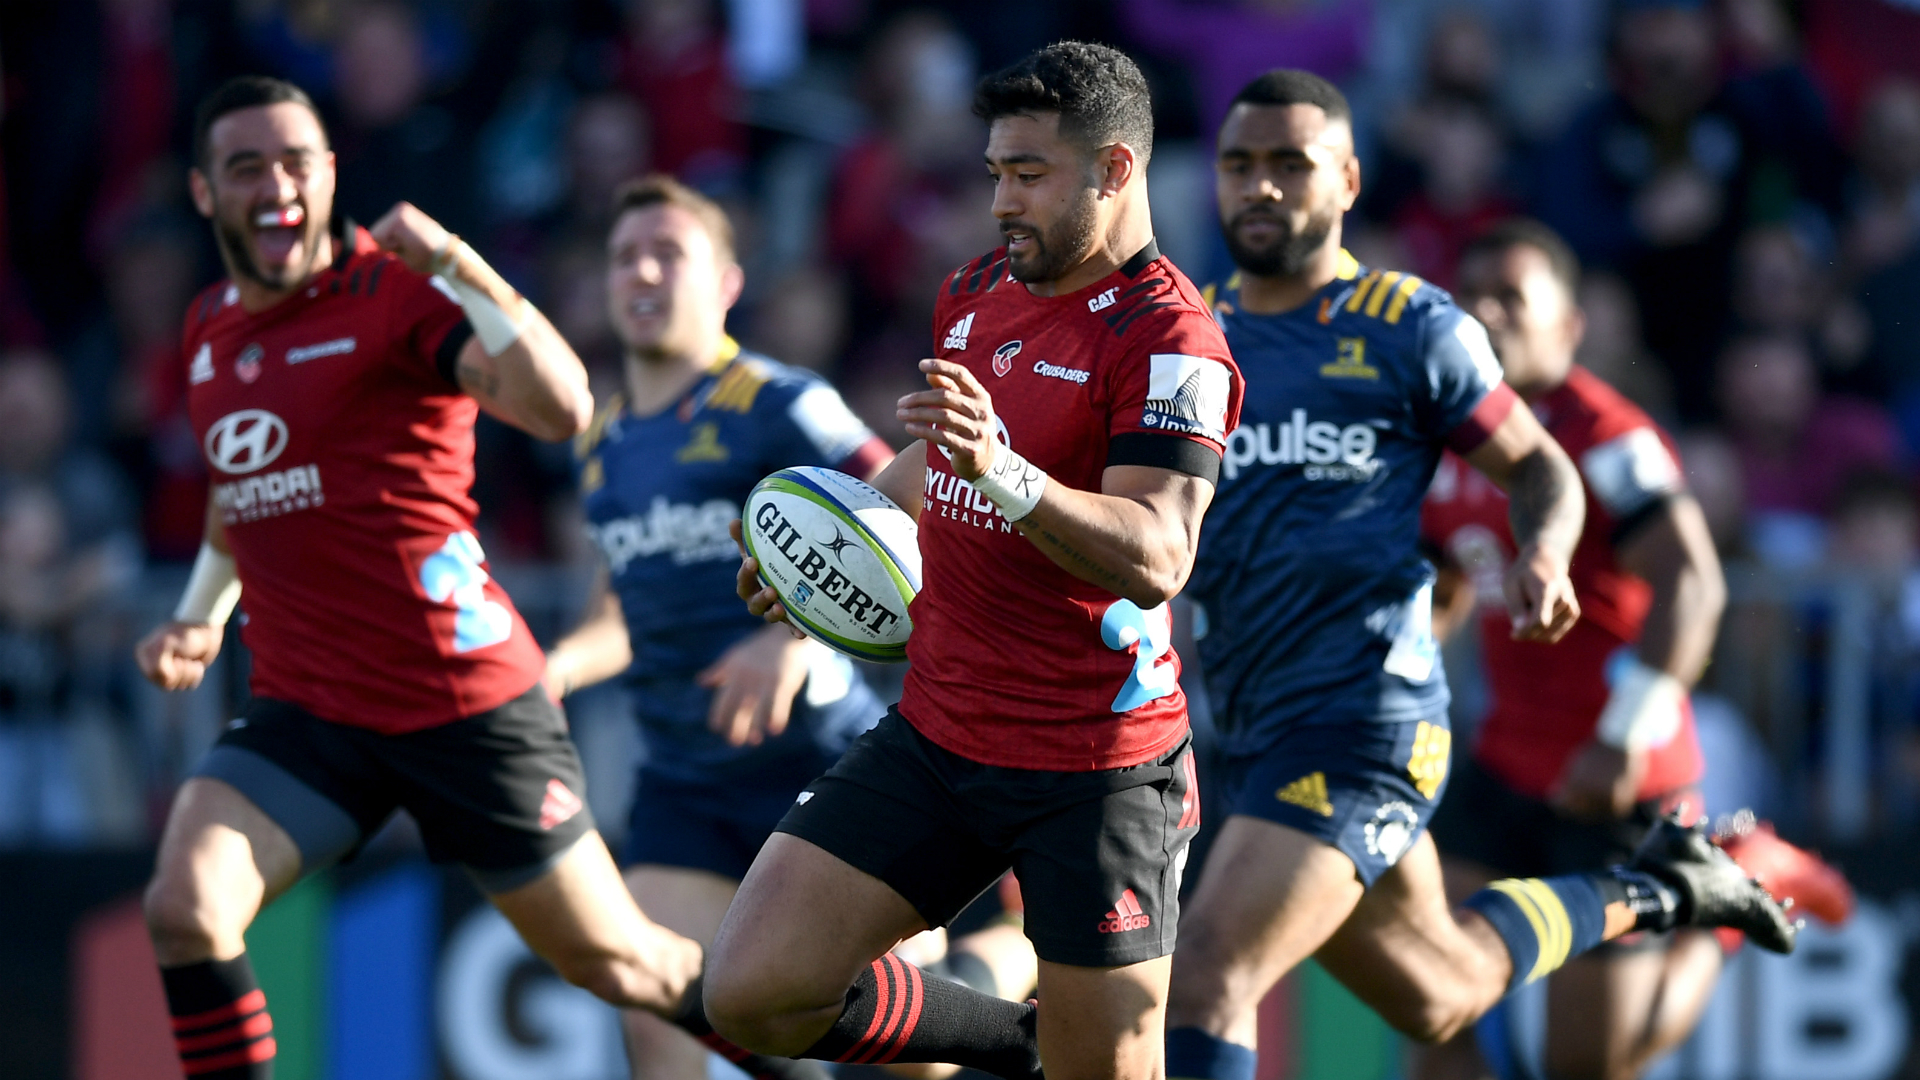 Trailing at half-time, the Crusaders overcame the Highlanders to dodge a make-or-break date with the Blues in Super Rugby Aotearoa.